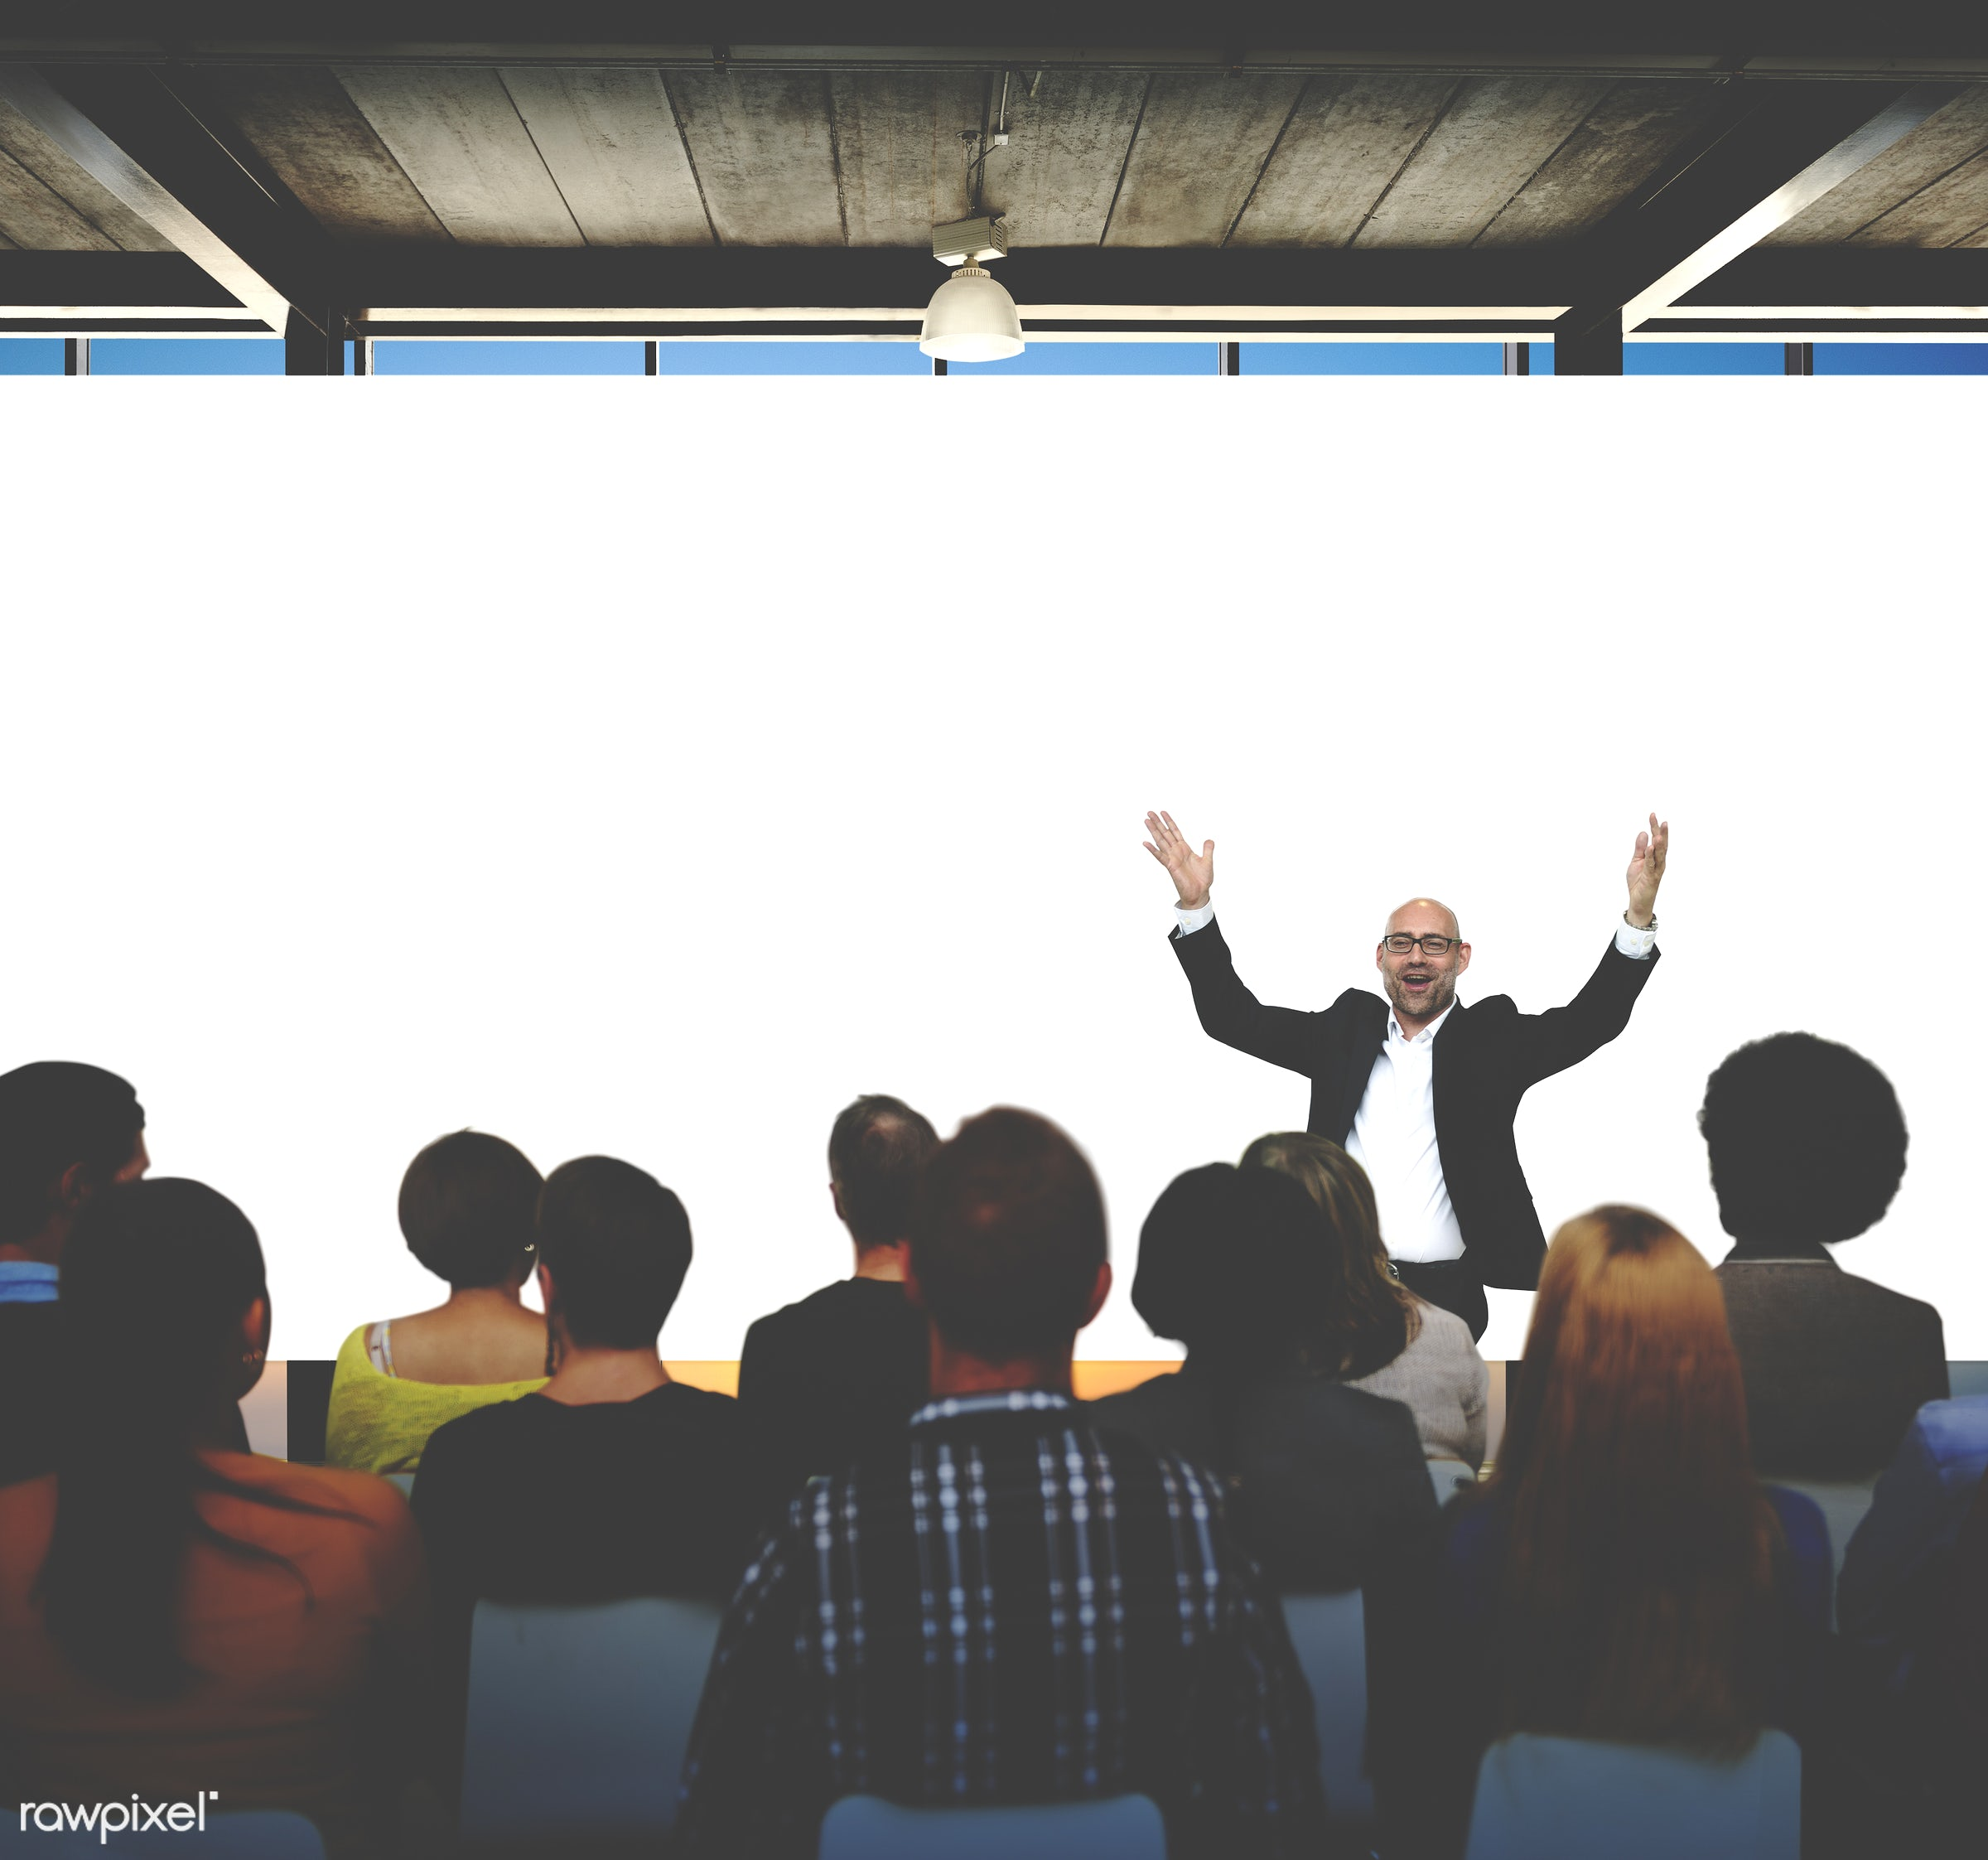 audience, board, board room, business, business people, businessmen, businesswomen, casual, colleagues, communication,...